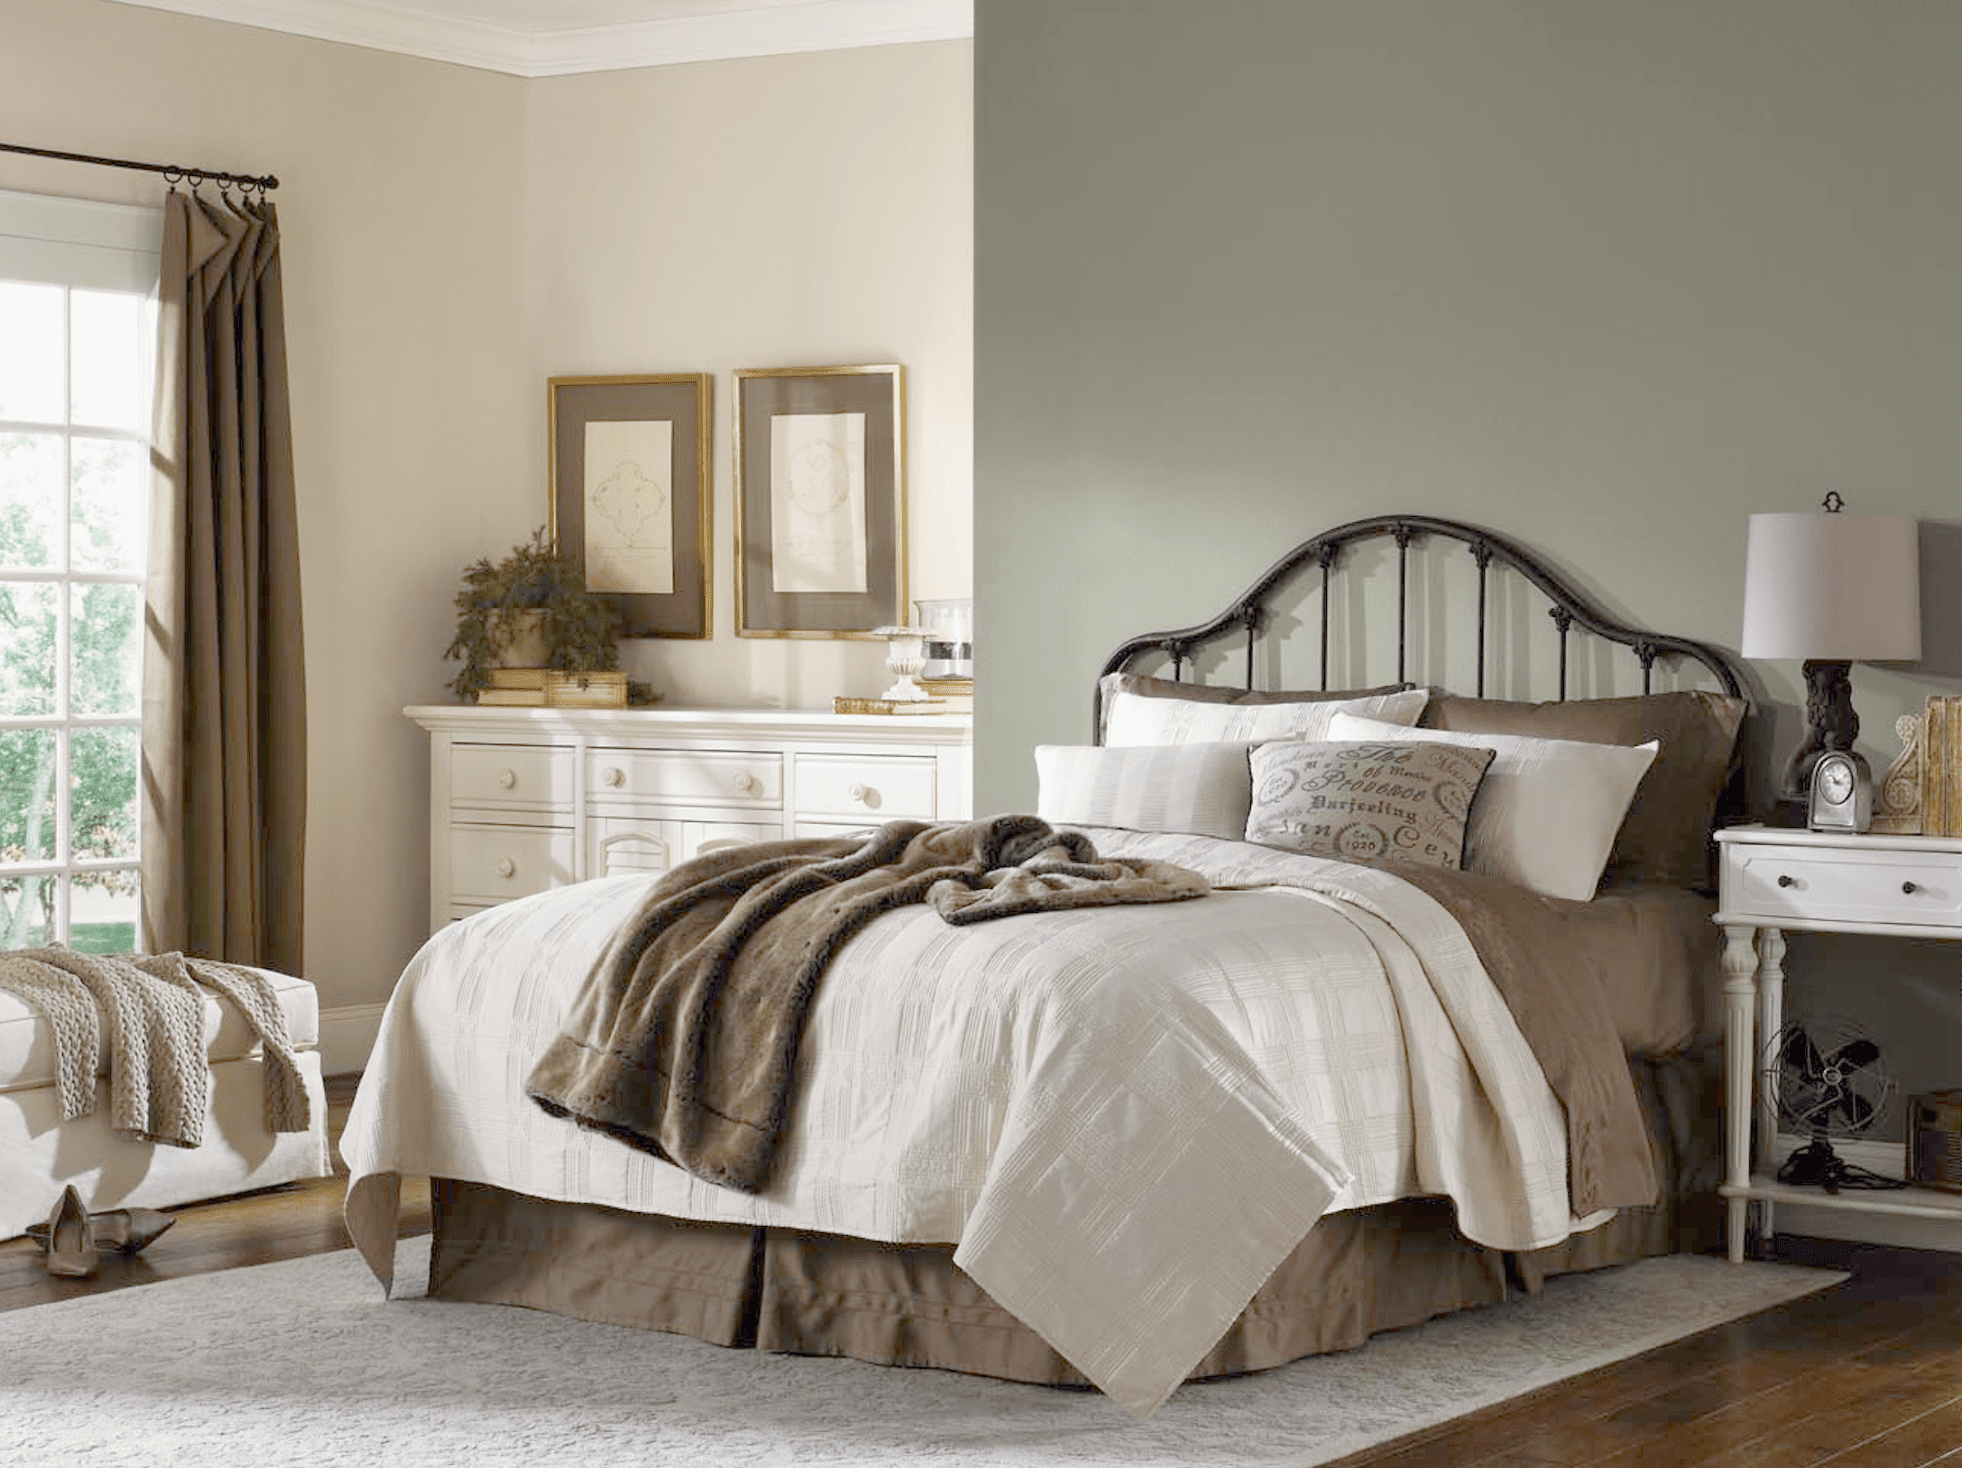 A Bedroom Painted With Sherwin Williams Escape Gray